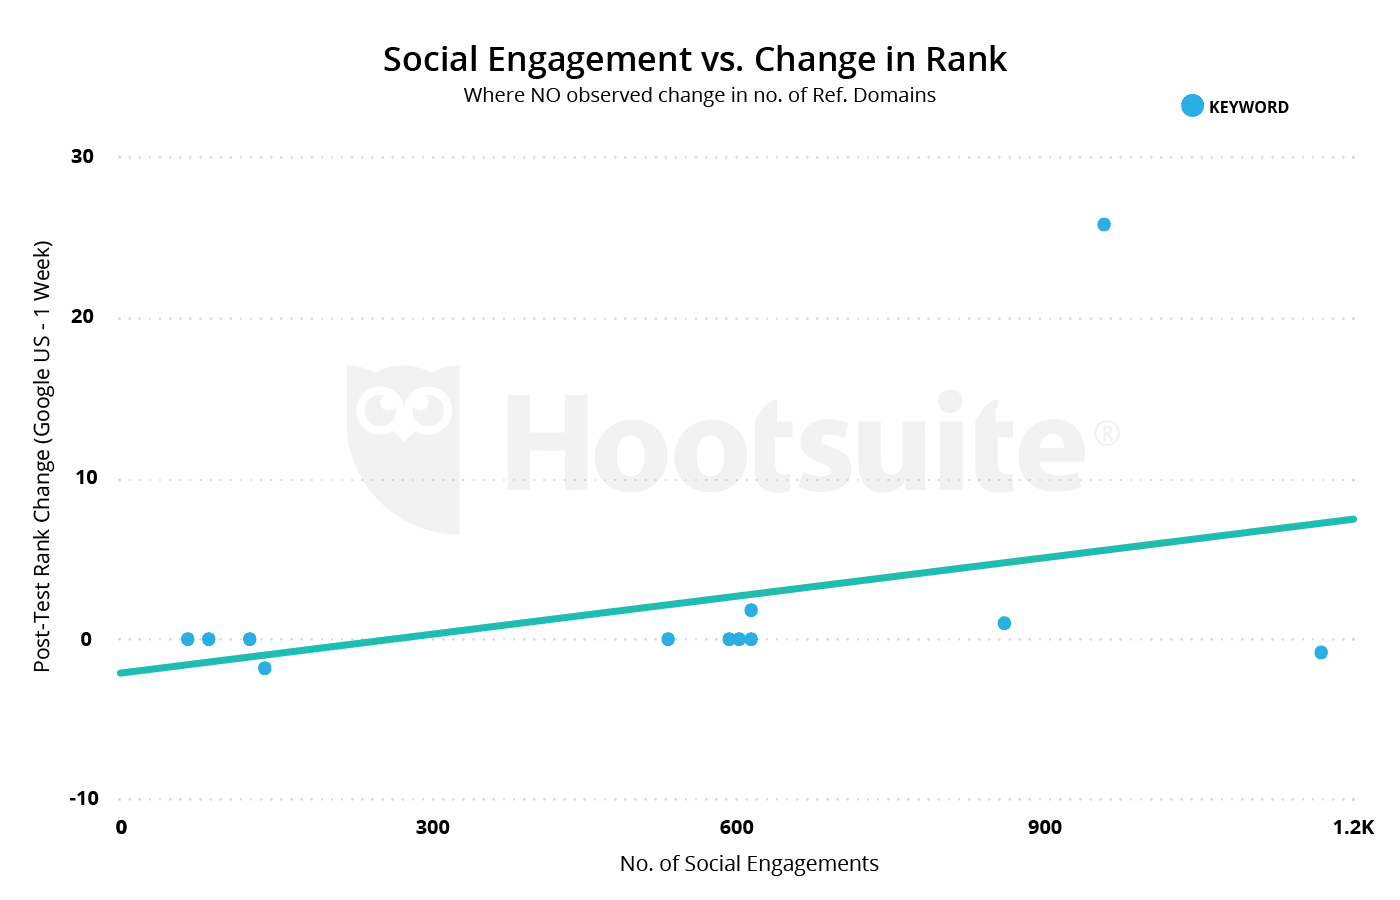 There is a positive correlation between social engagements and change in rank